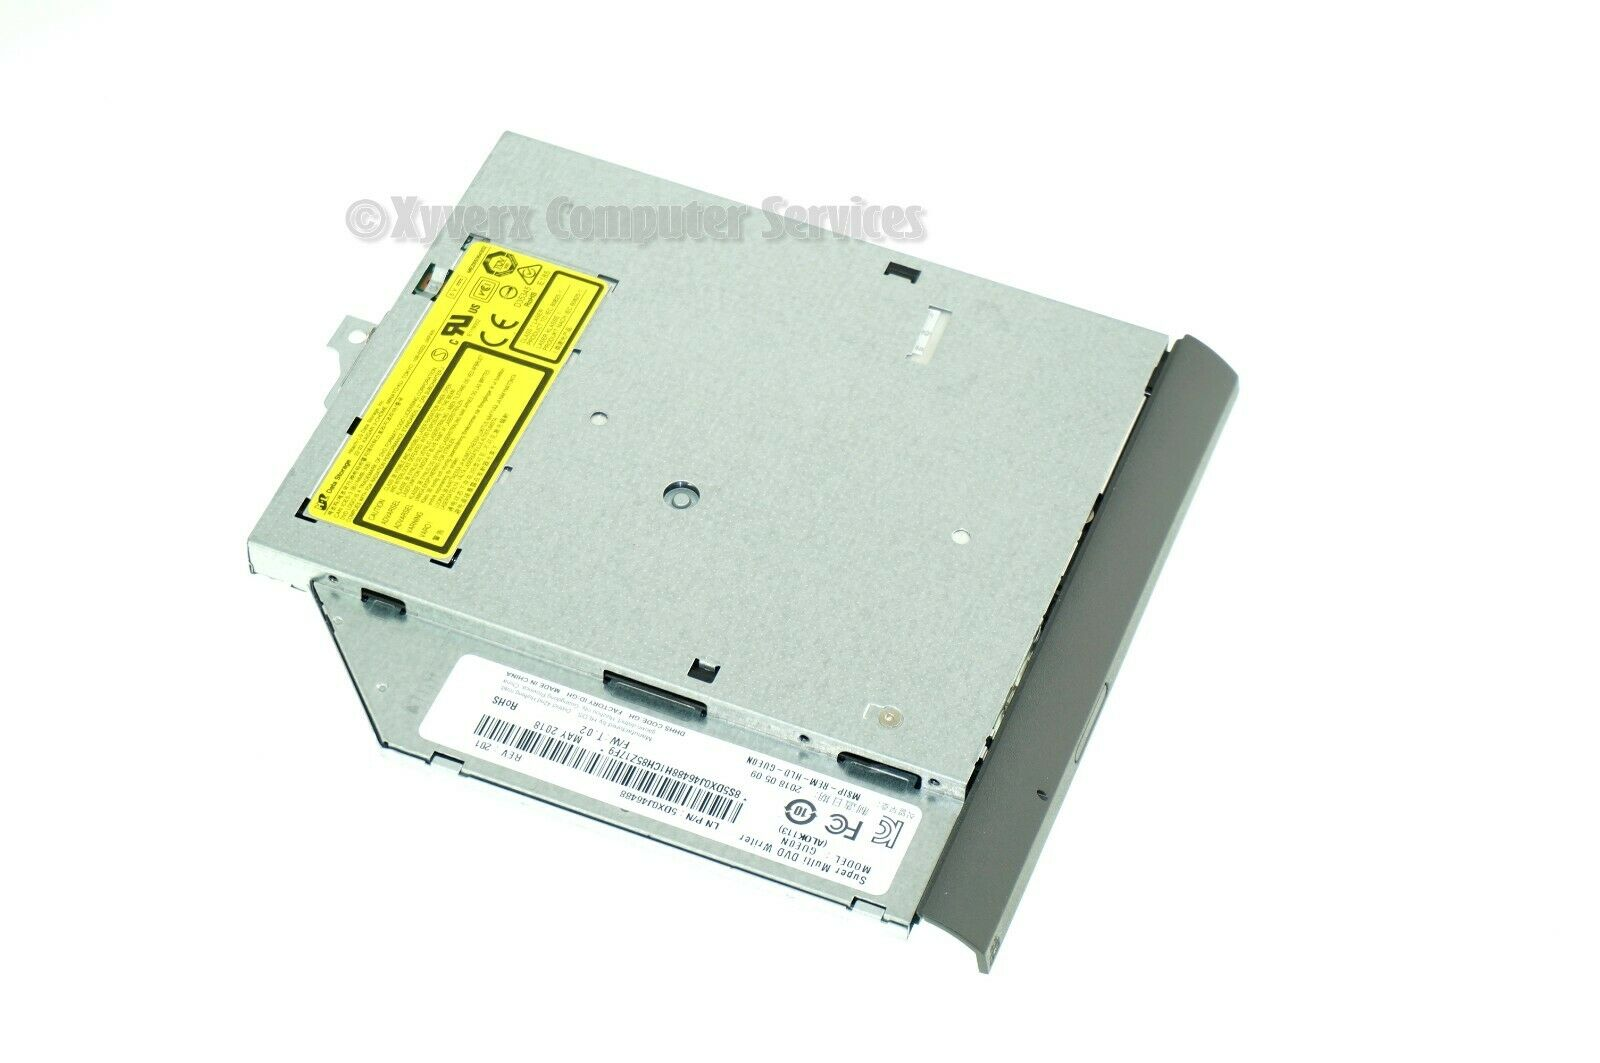 HIGHDING SATA CD DVD-ROM//RAM DVD-RW Drive Writer Burner for Lenovo IdeaPad Z560 Z565 Z570